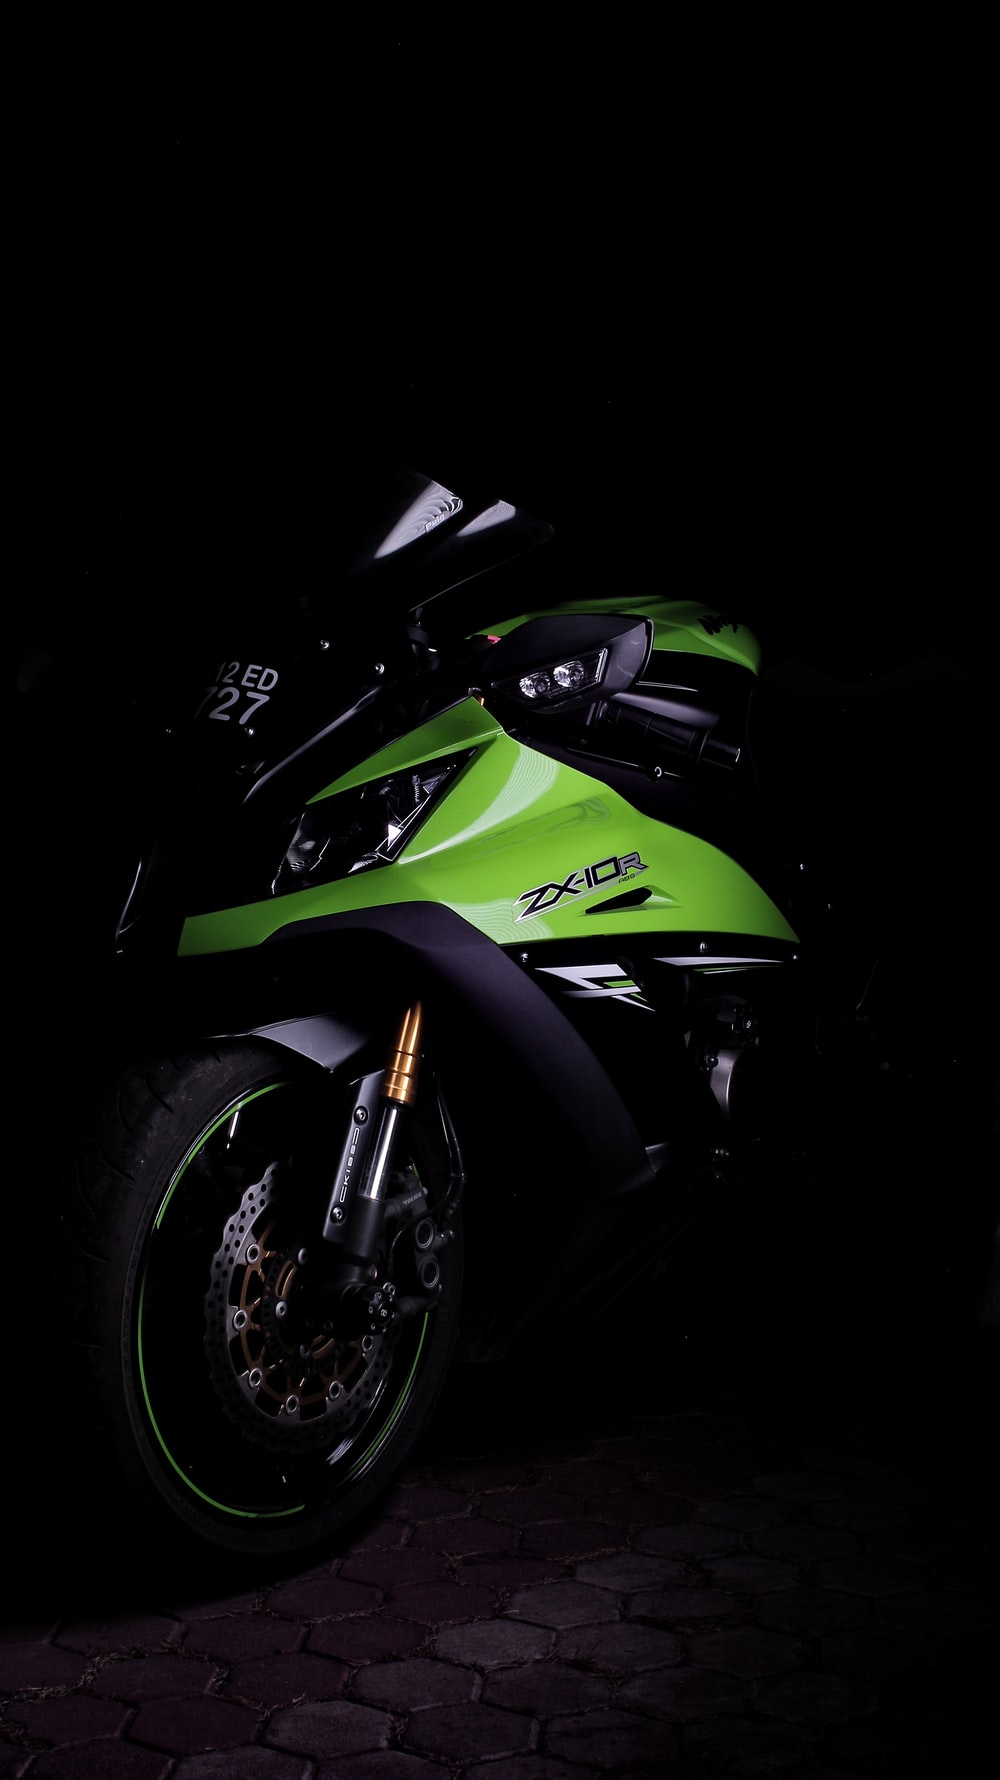 green and black sports bike